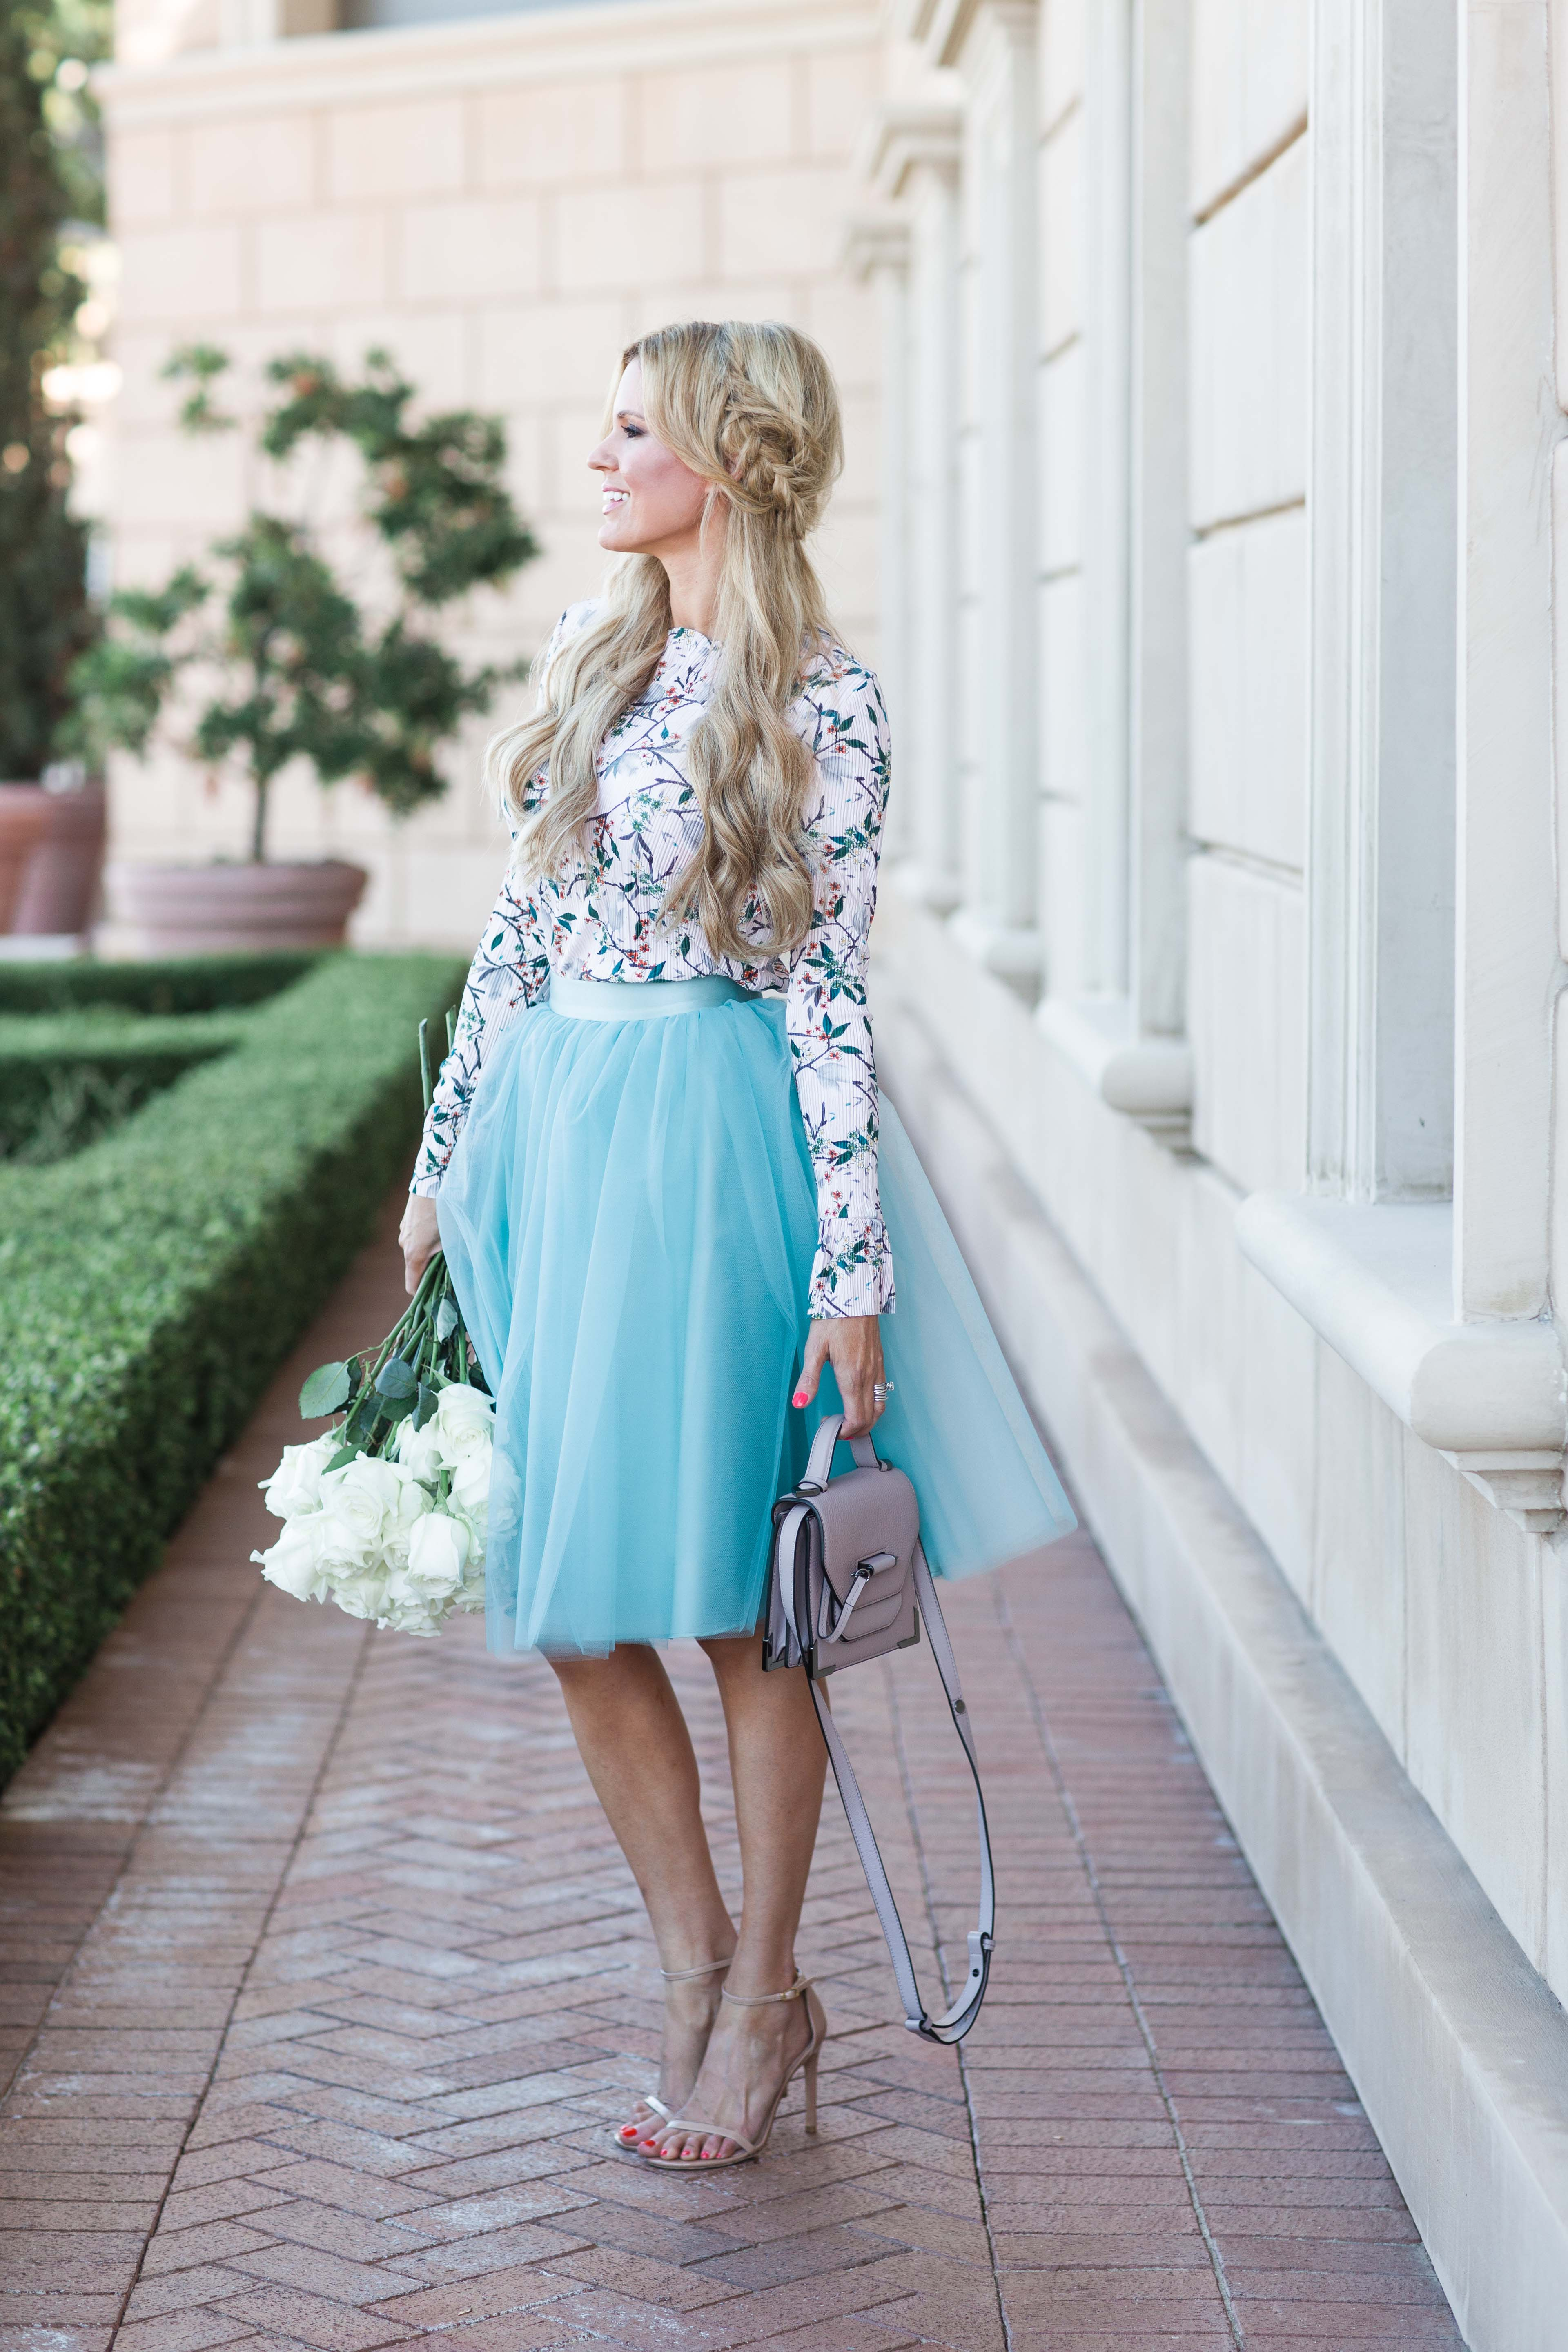 Floral Print Tulle Skirt